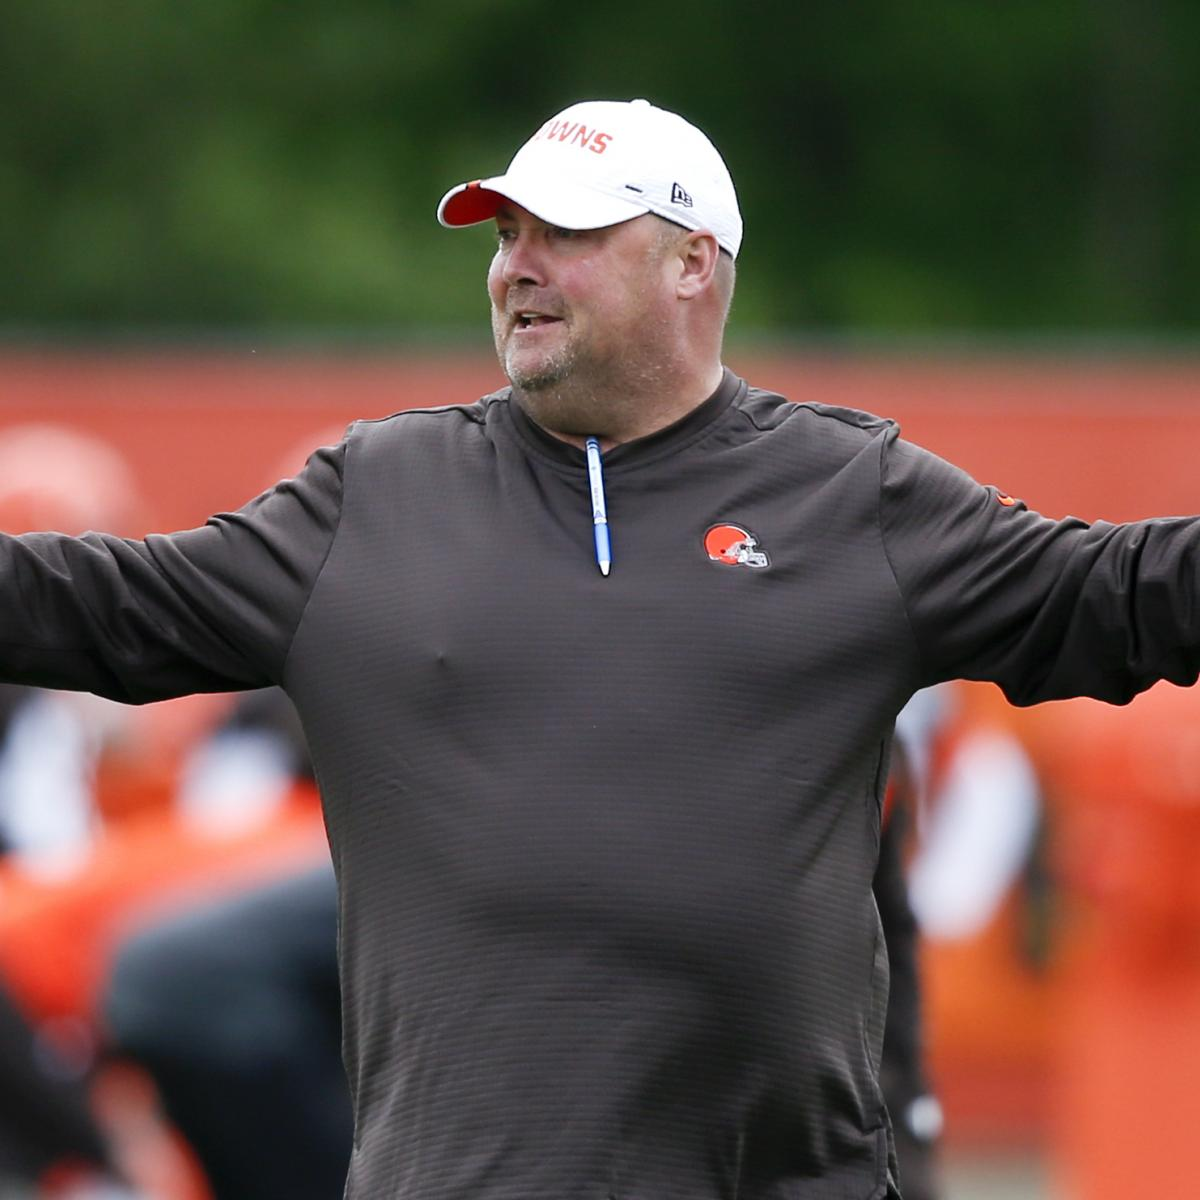 Cleveland Browns head coach Freddie Kitchens apparently isn't happy that Odell Beckham Jr. missed most of the squad's organized team activities...